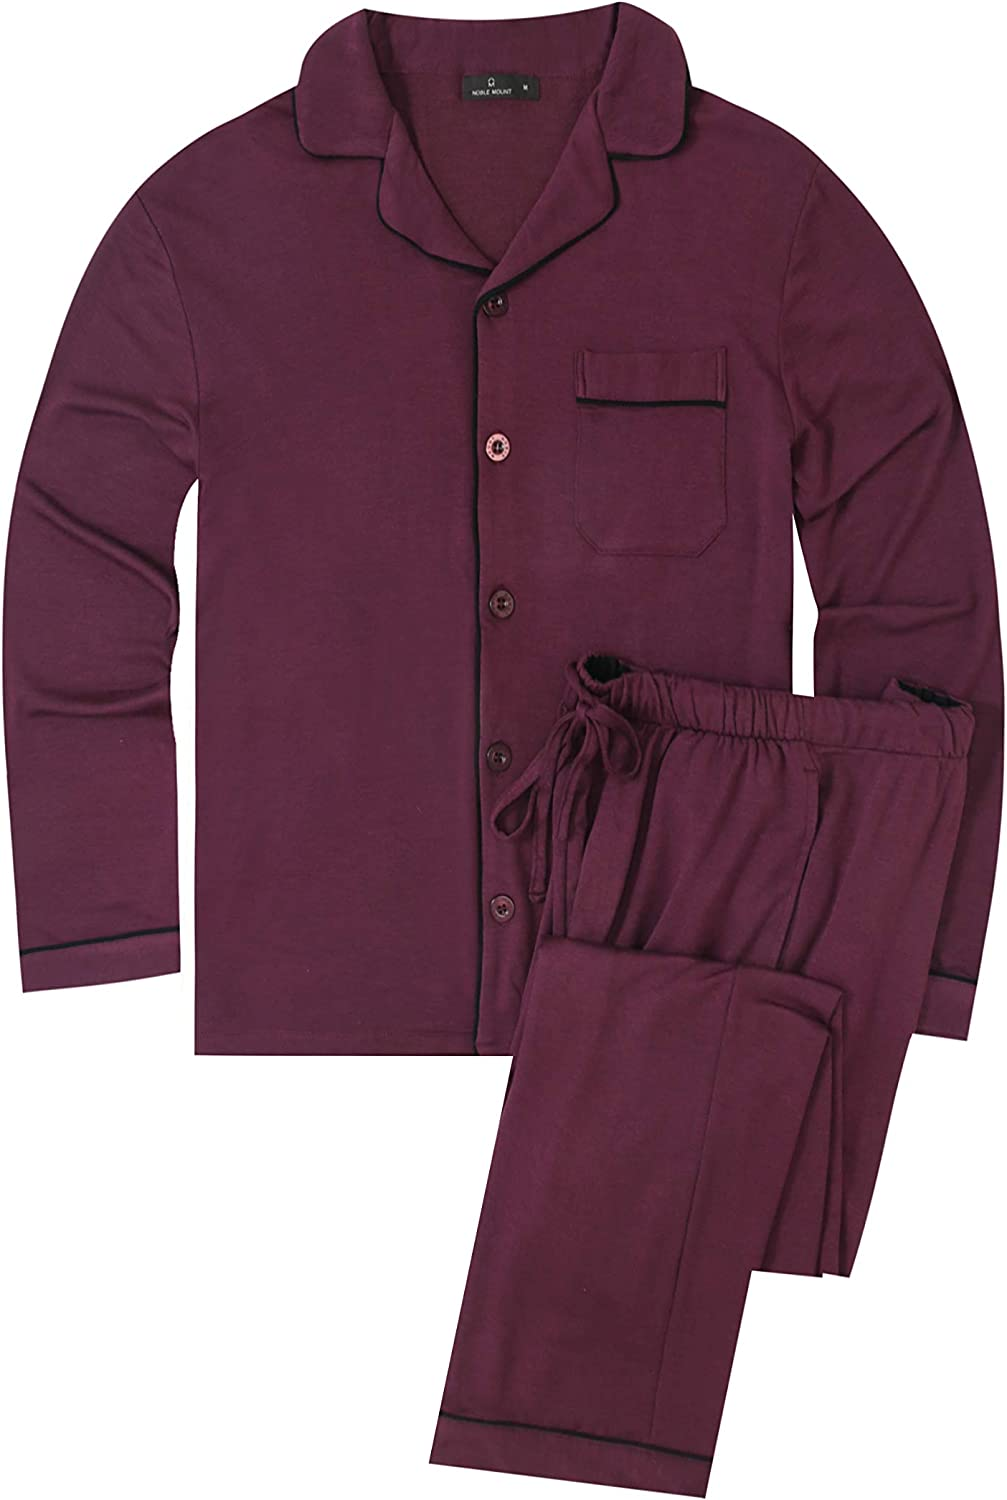 Noble Mount Men's Jersey Knit Set French Popular popular New products, world's highest quality popular! Pajama Terry